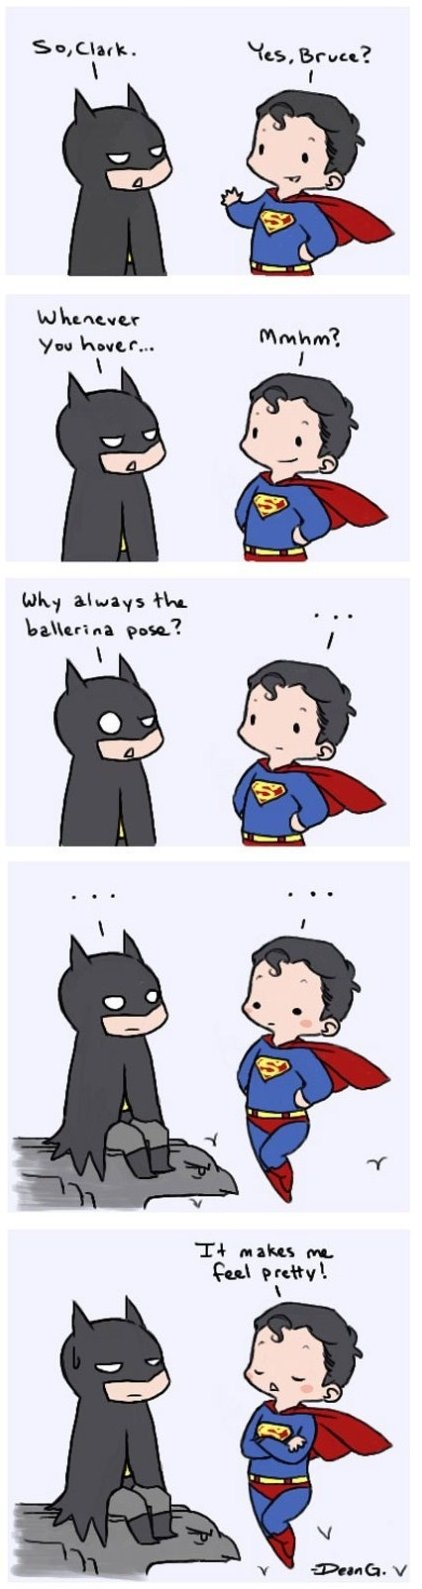 Batman vs. Superman...awww I love them both!!!